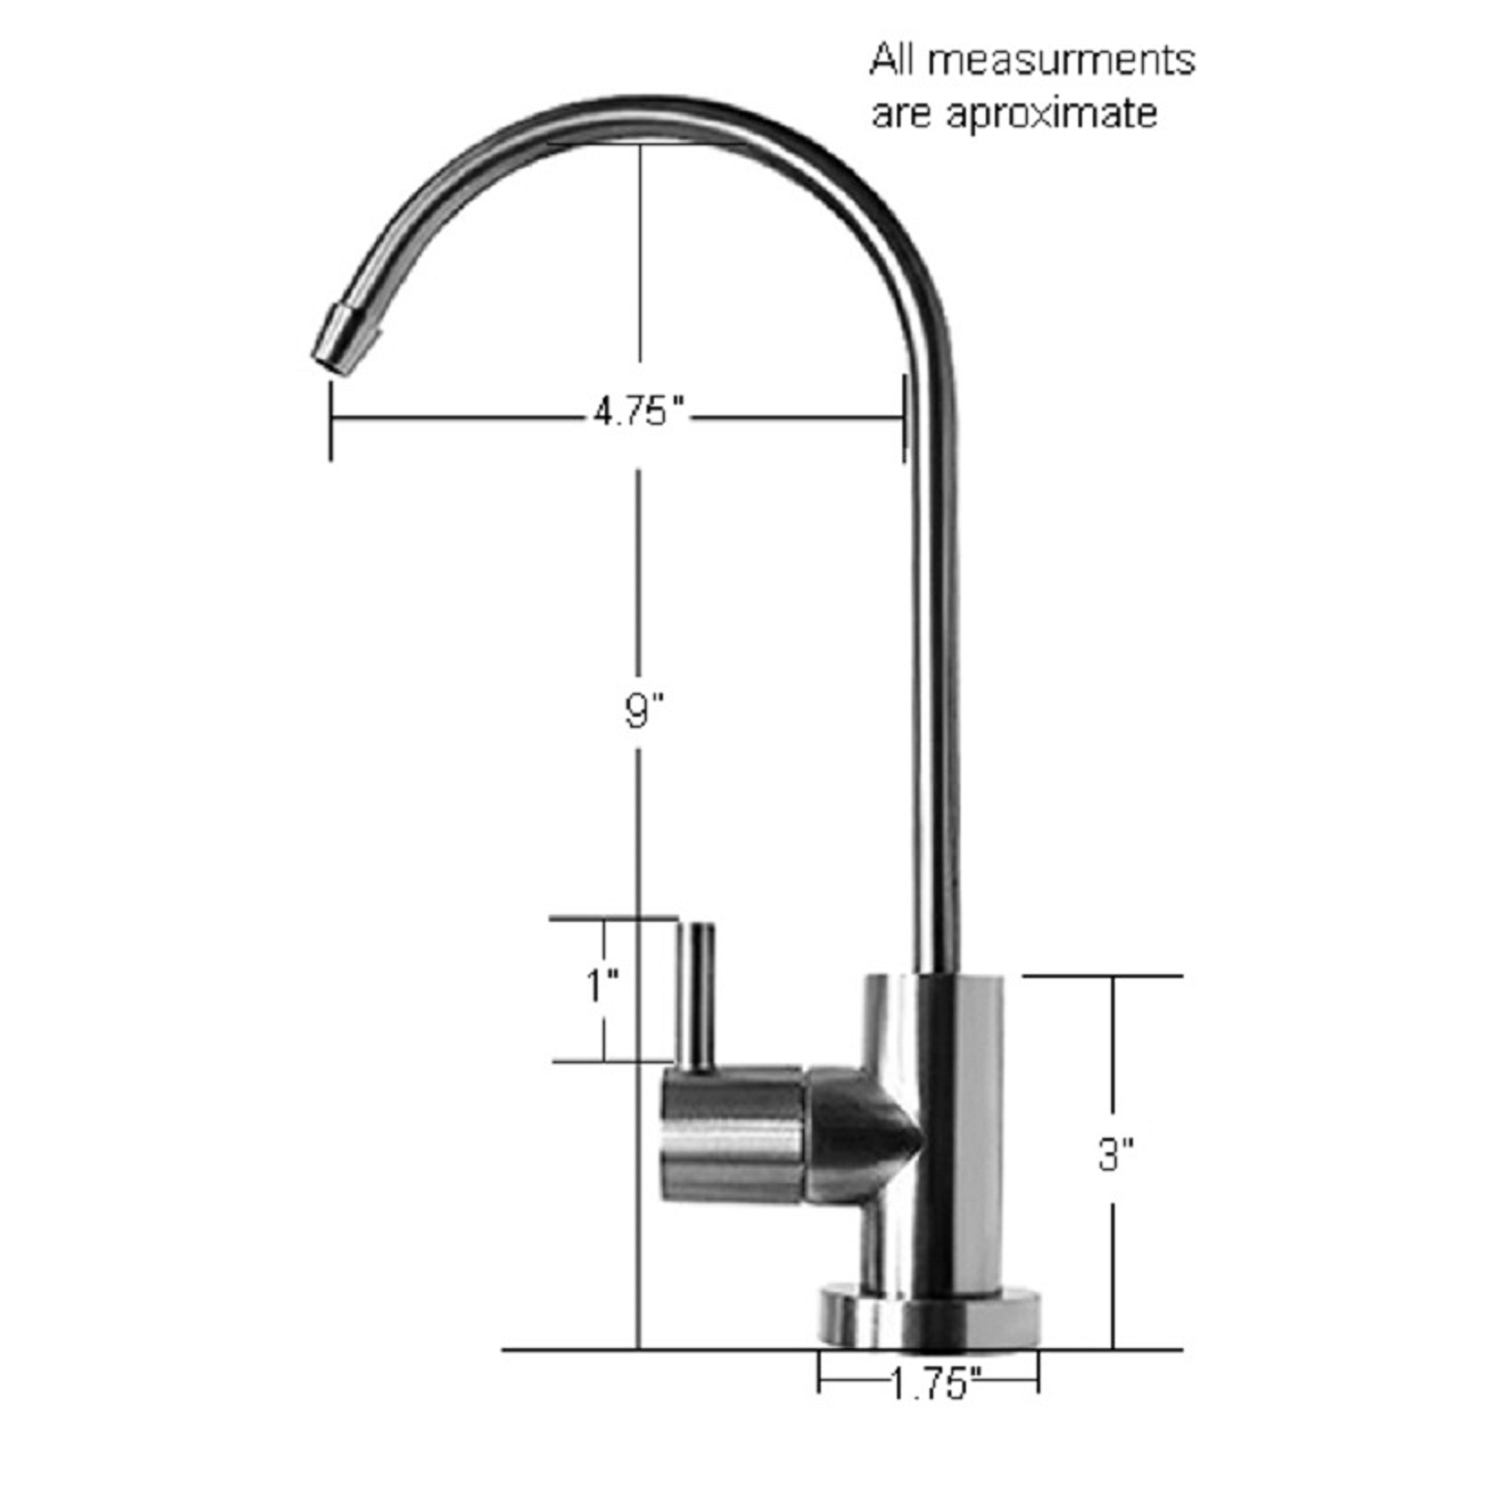 sinks sink modern faucet mop discount sloan kohler wholesale kitchen faucets widespread ideas